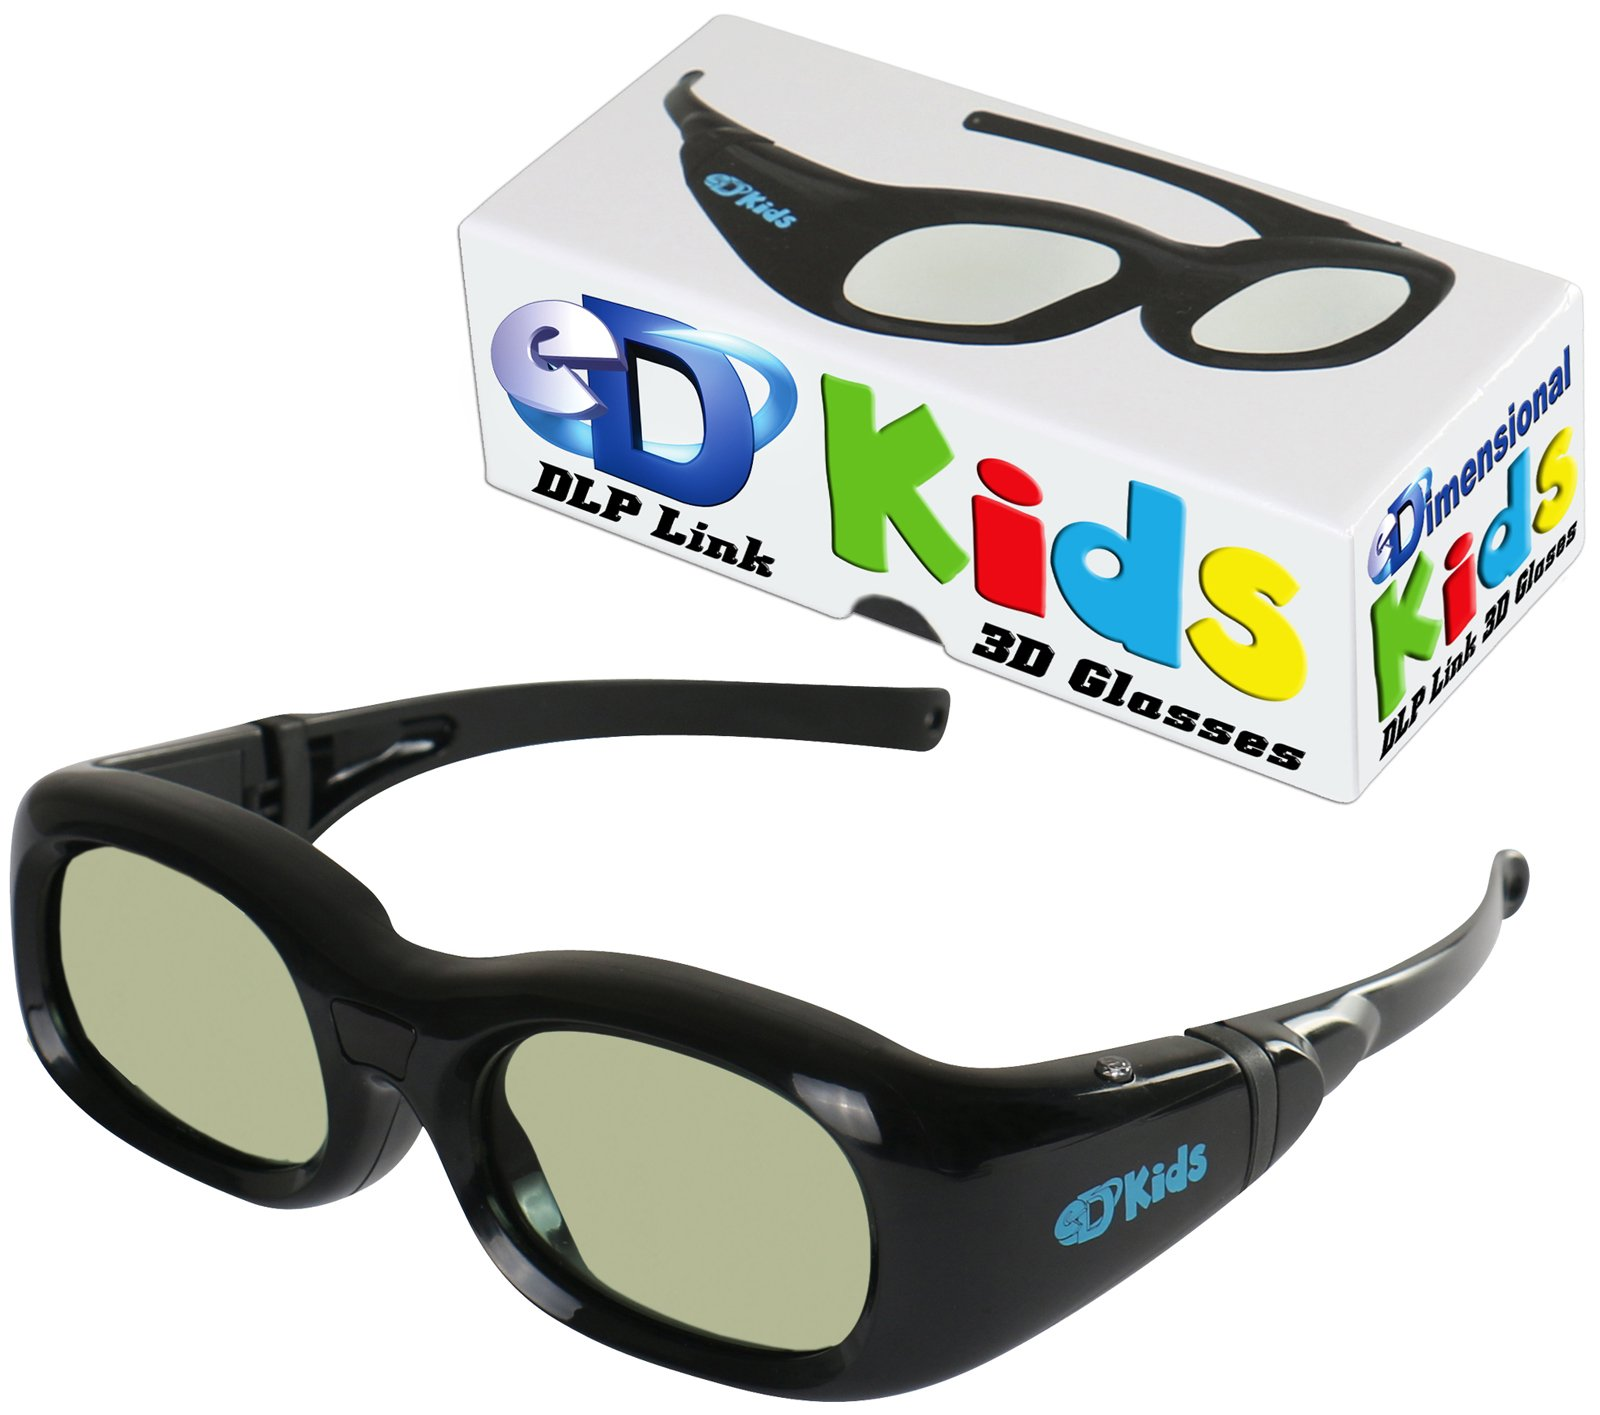 KIDS DLP LINK eDimensional Elite 144 Hz Active Rechargeable eD Children's 3D Glasses for All 3D DLP Projectors - BenQ, Optoma, ViewSonic & Endless Others!